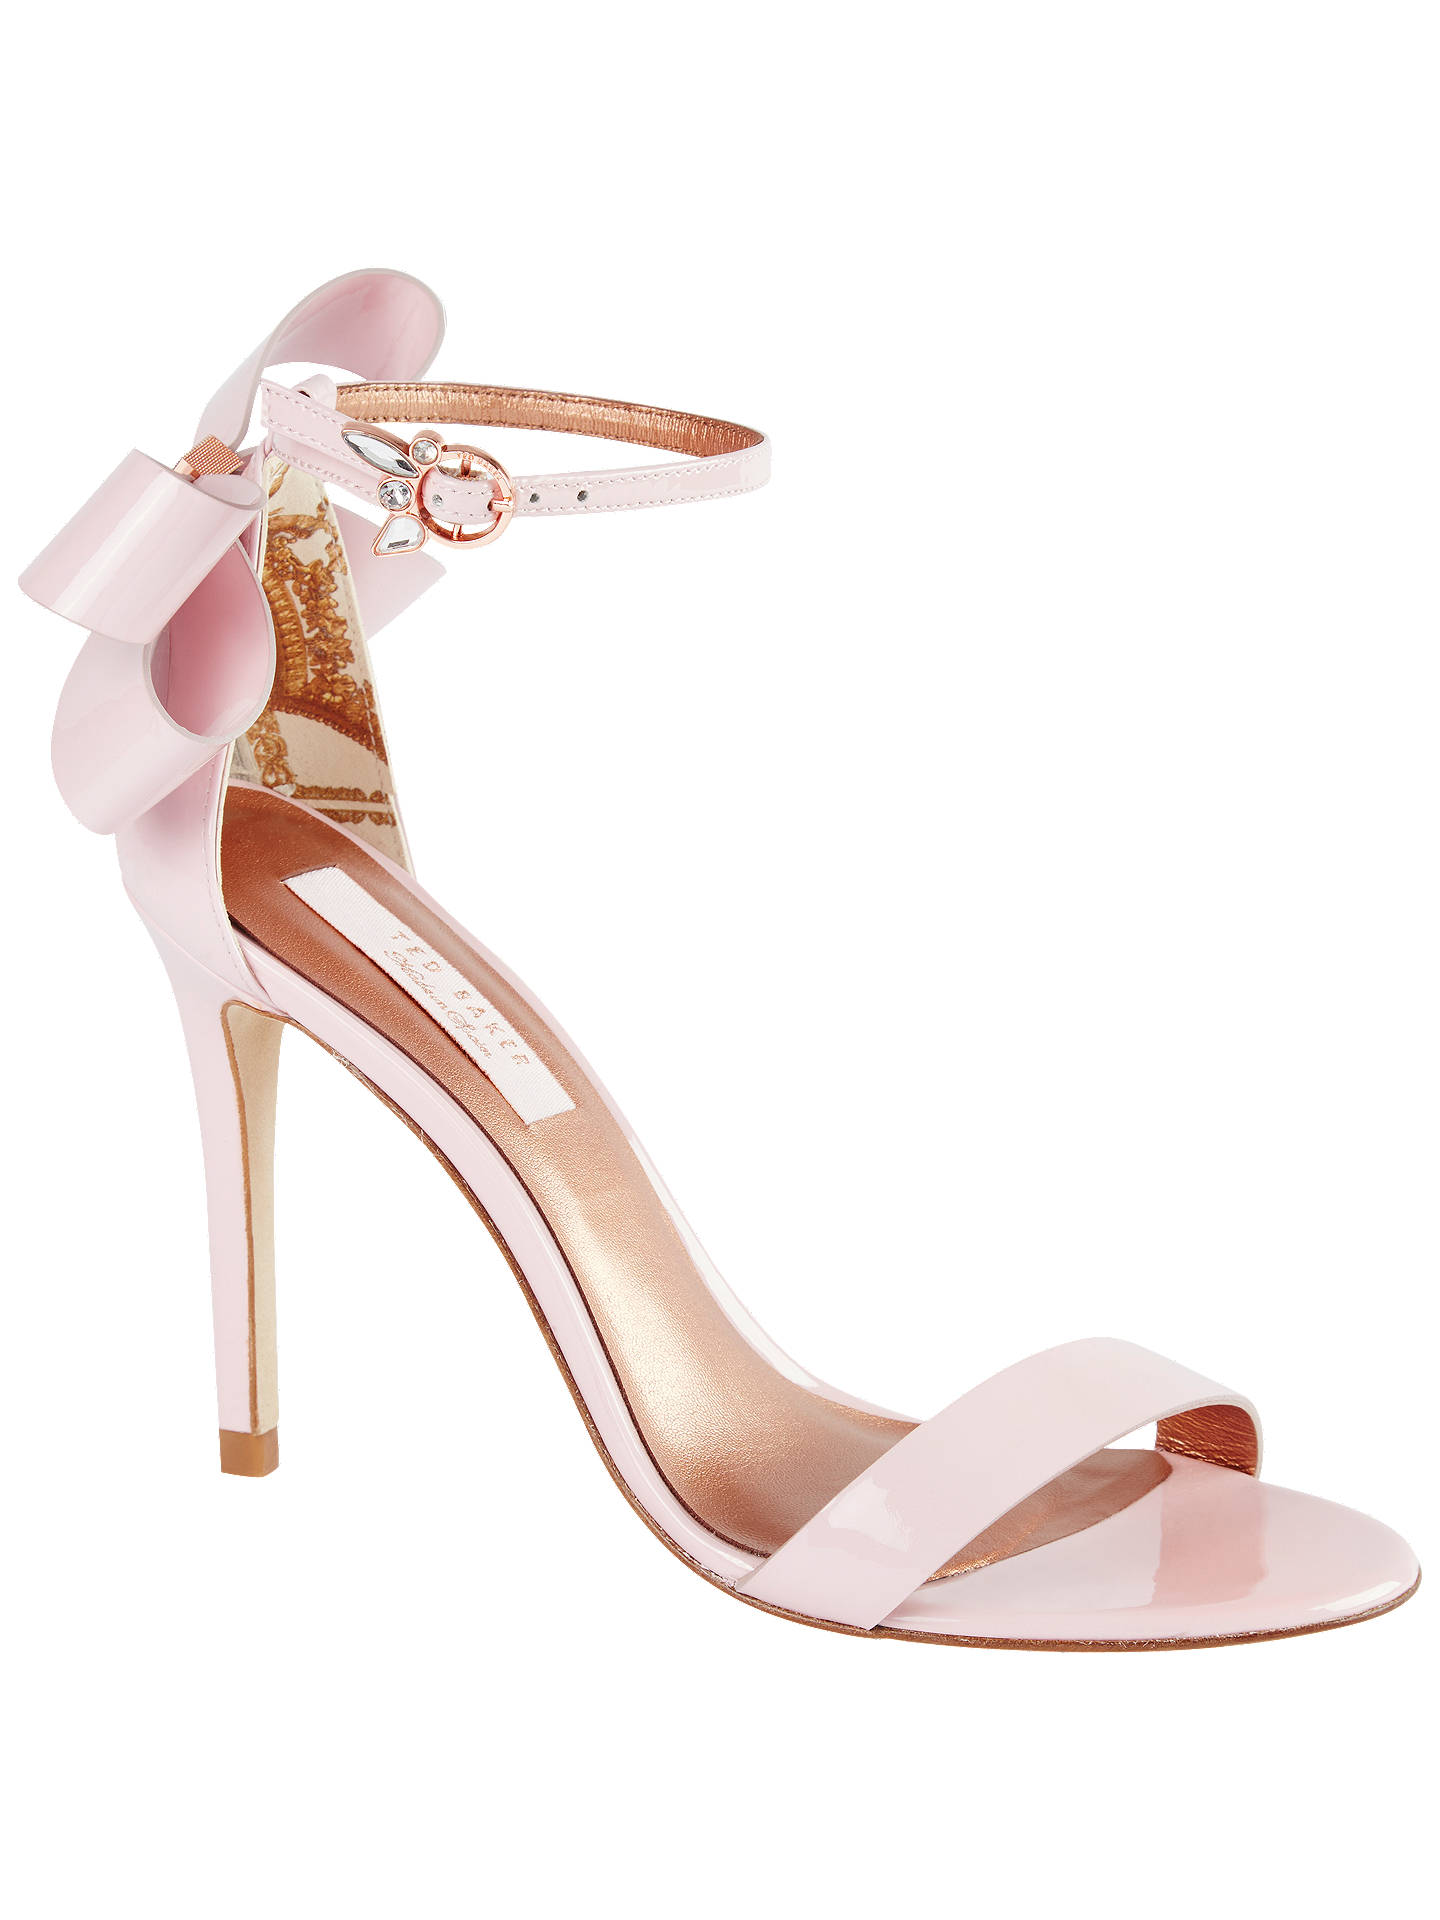 7301843276120 Ted Baker Sandalo Stiletto Heel Sandals at John Lewis   Partners